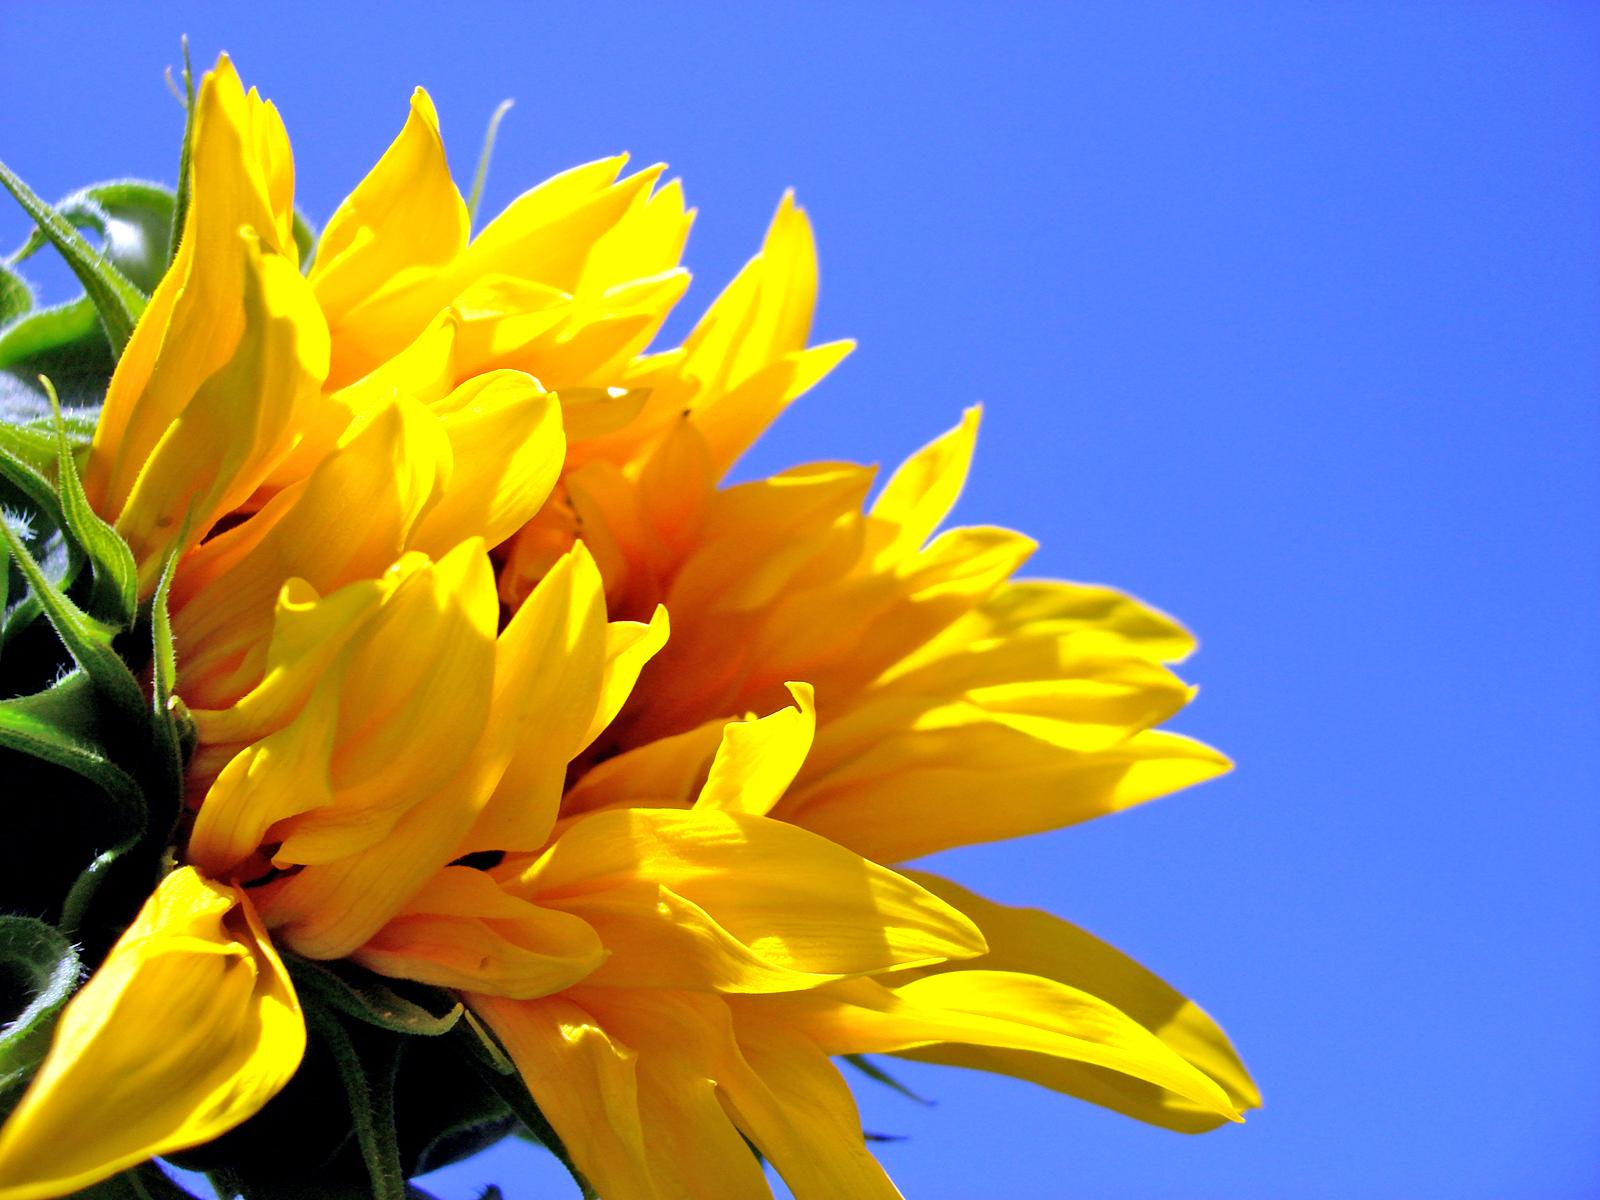 Most beautiful sunflowers wallpapers  HD Wallpapers Rocks 1600x1200